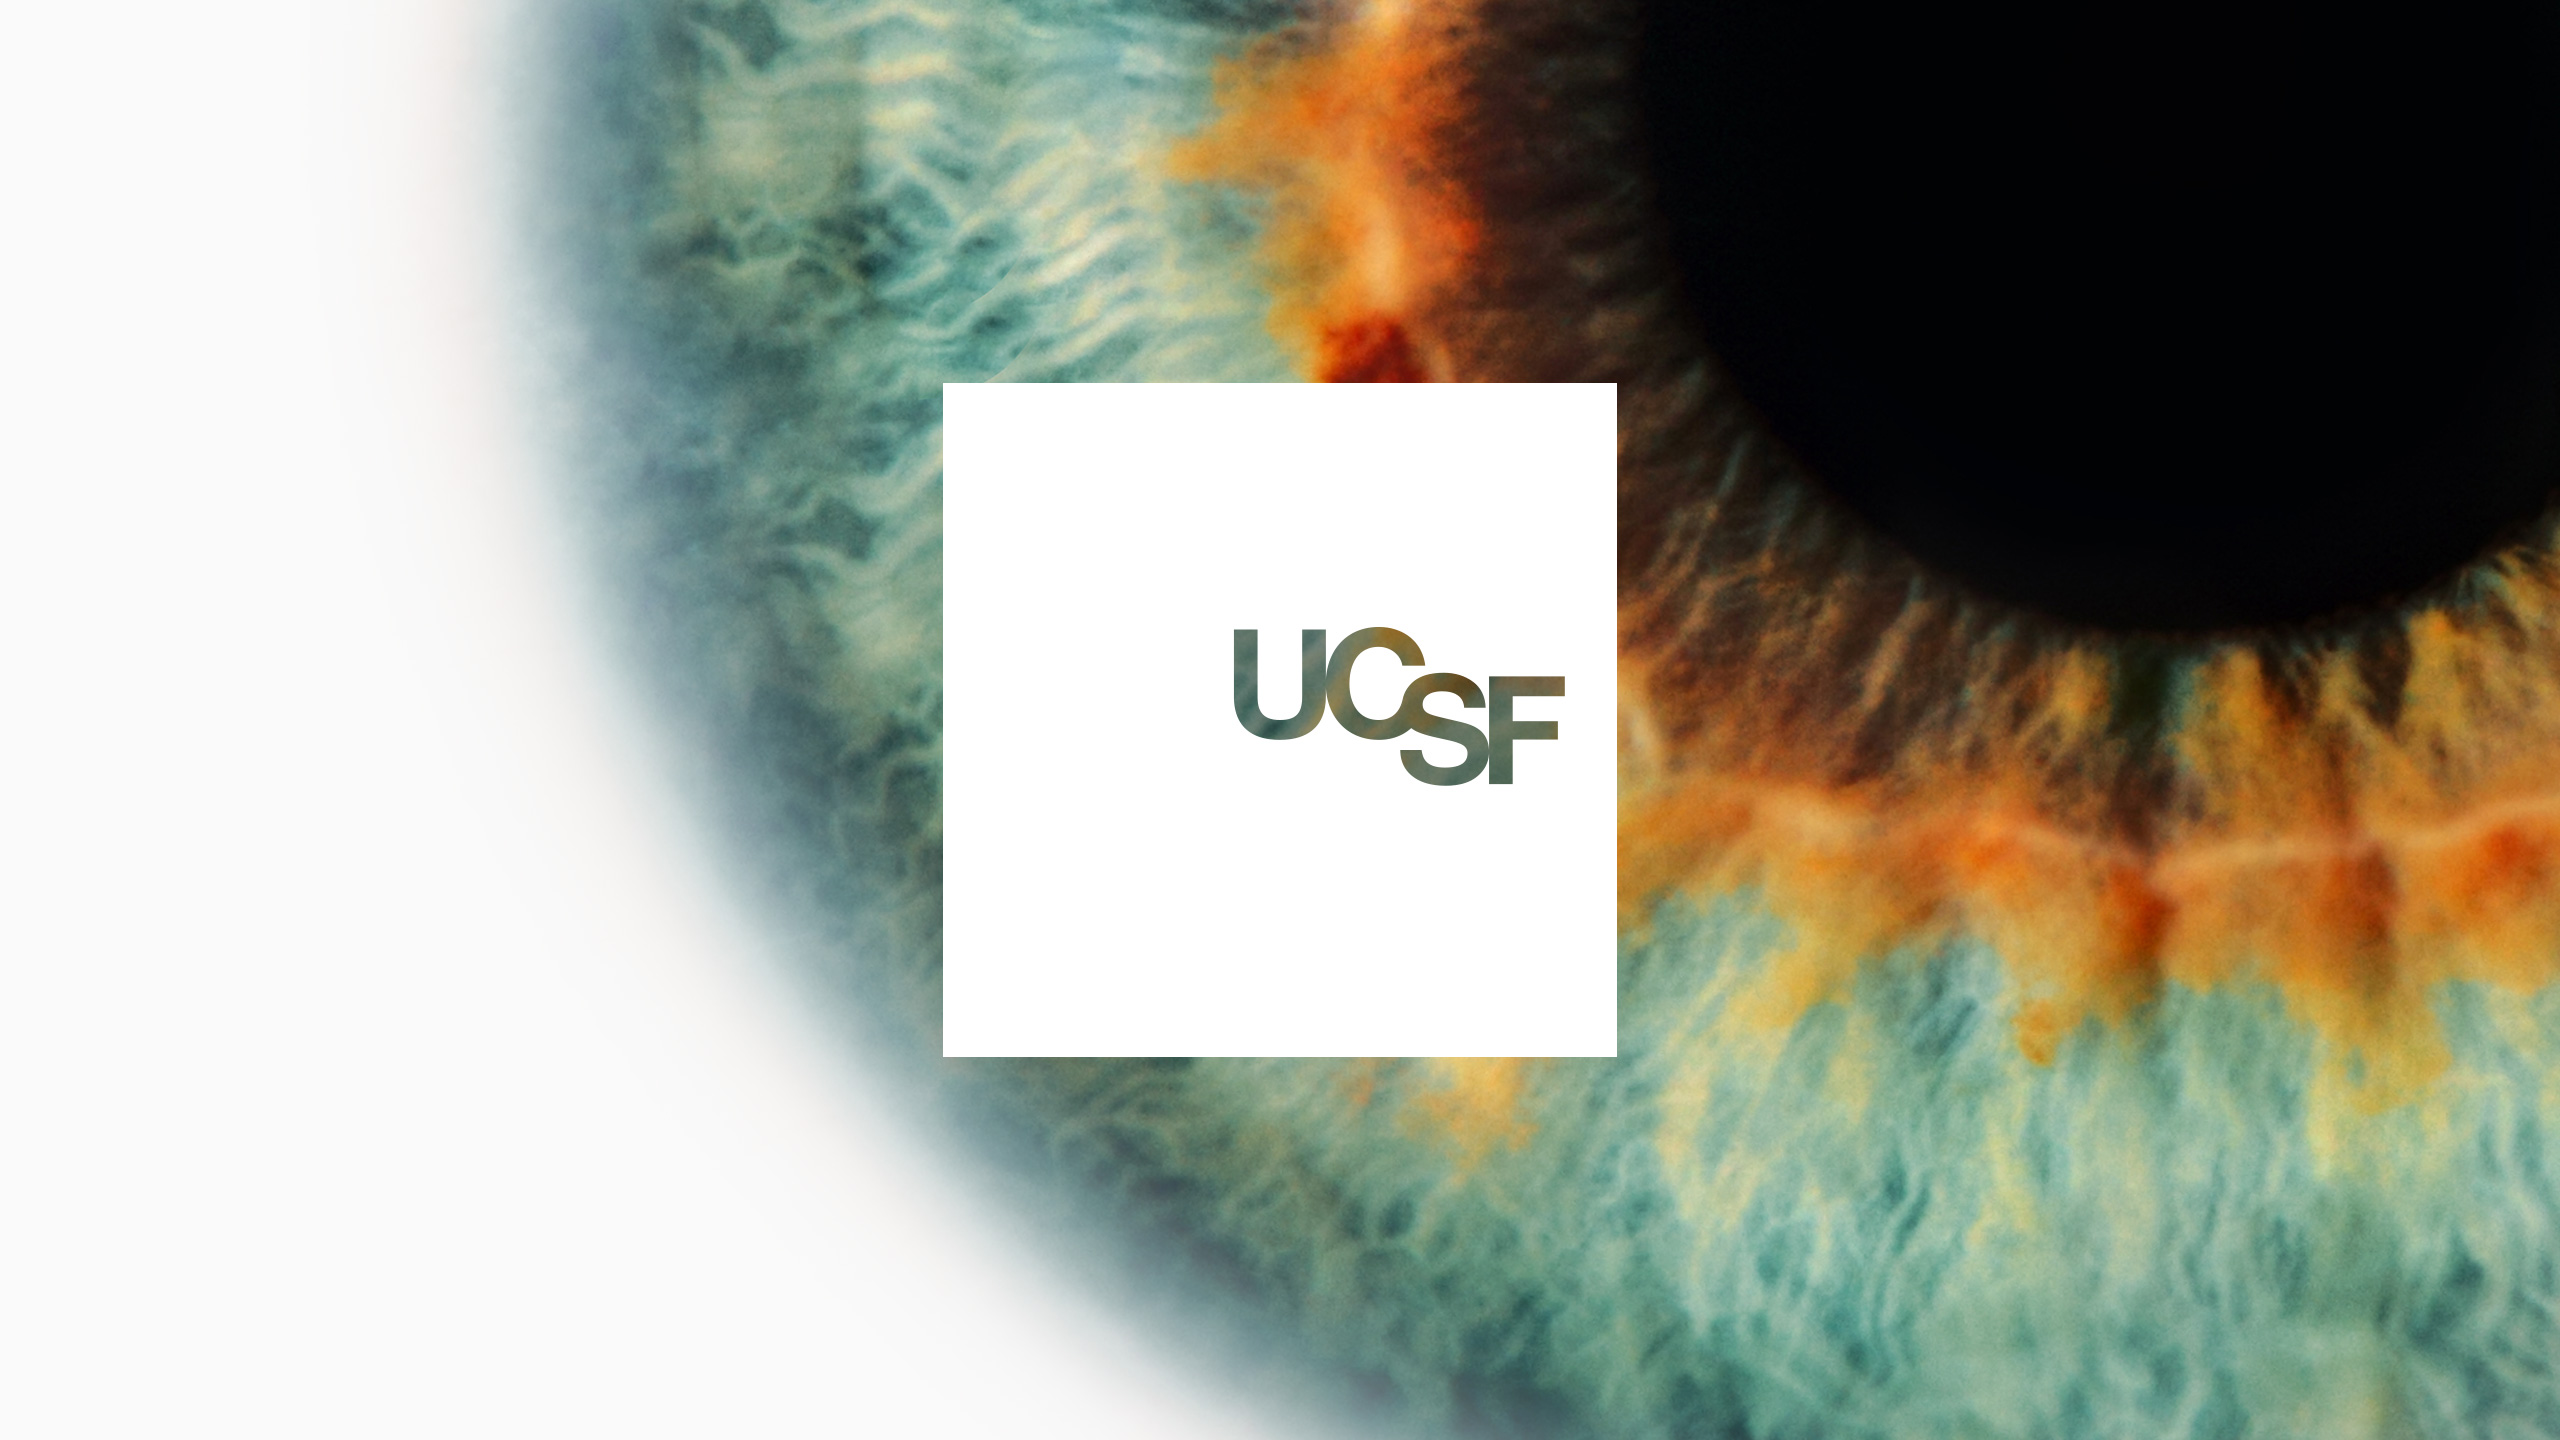 ucsf-brand-identity-eye-background